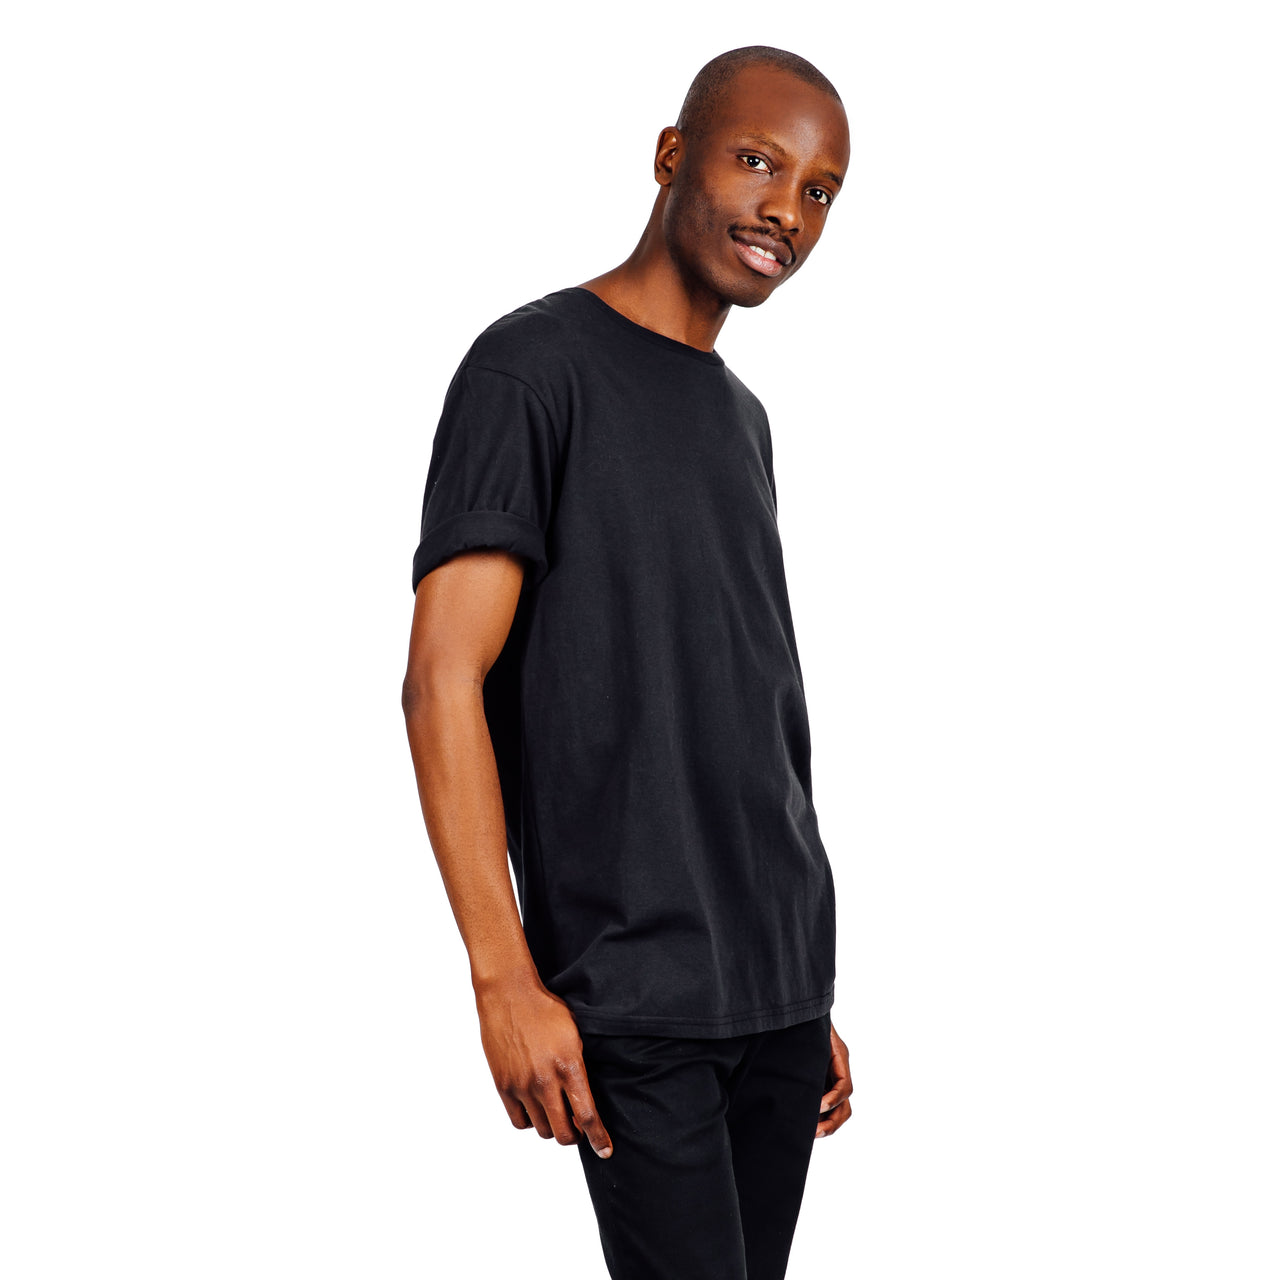 Relaxed Fit Organic Cotton Tee - Black